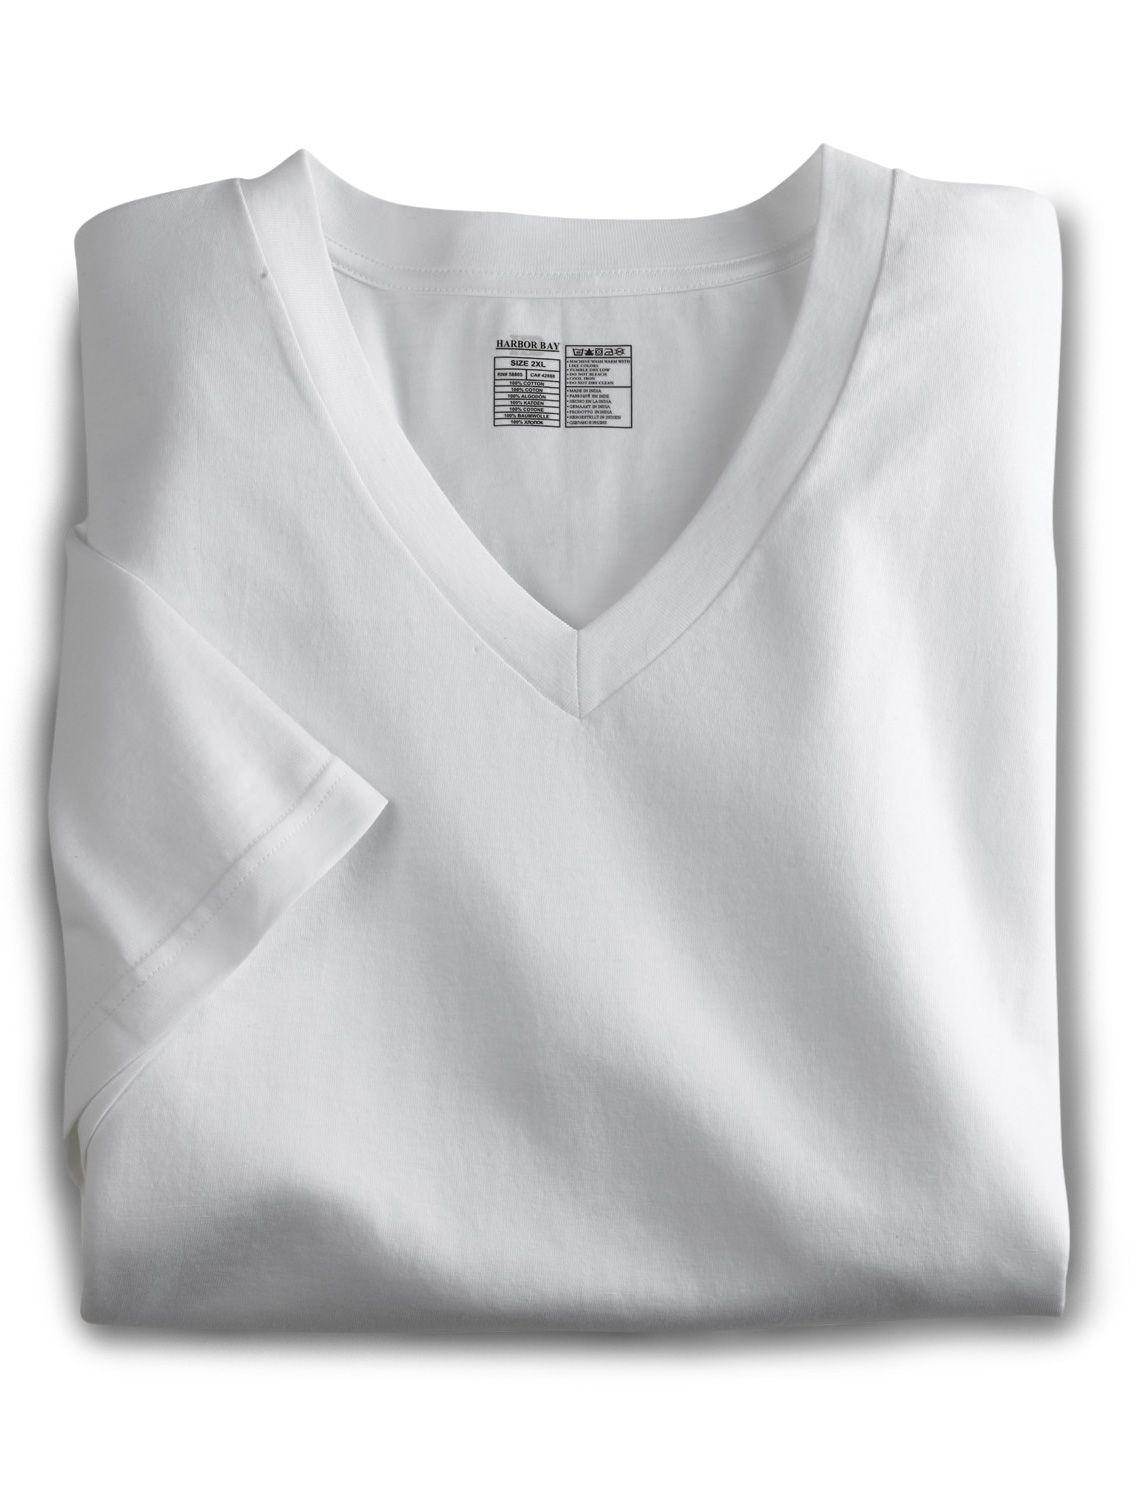 Harbor Bay ® 2-pk V-Neck T-Shirts